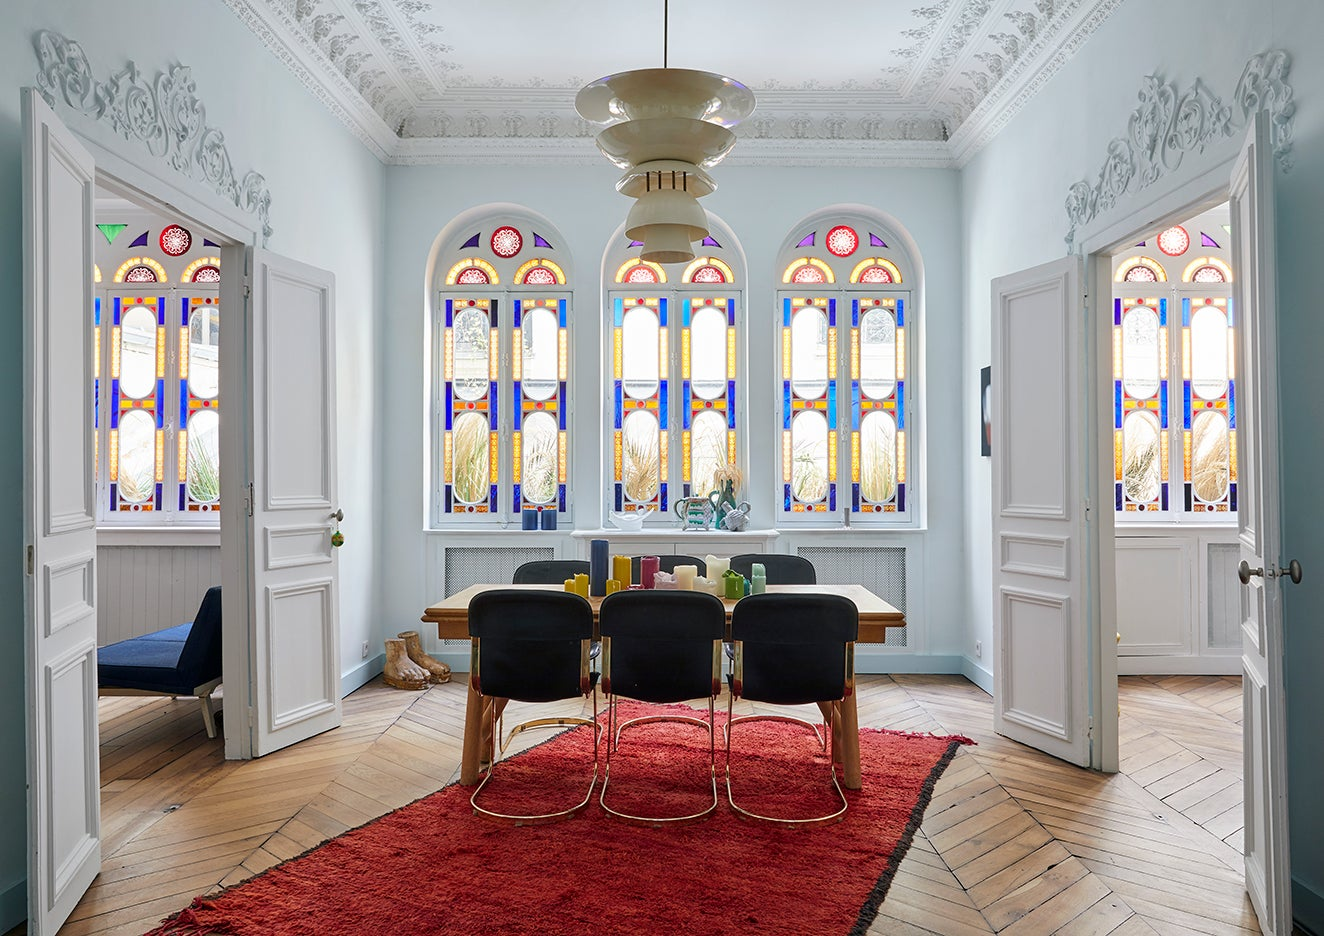 Stained glass windows in a Paris apartment